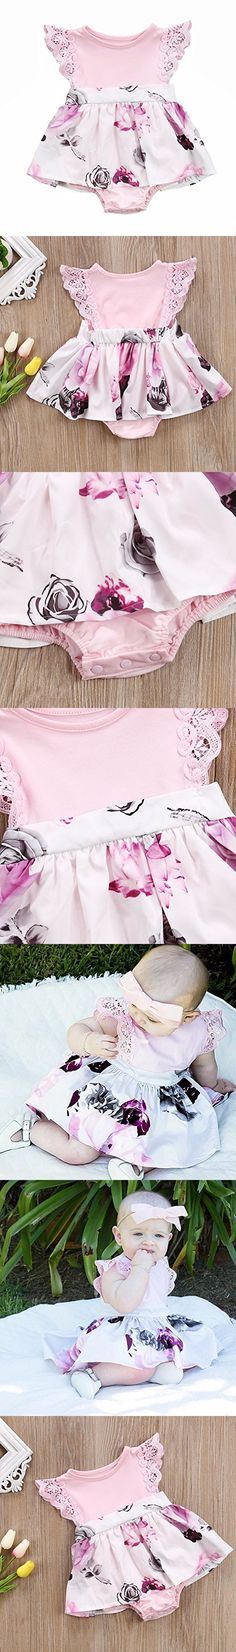 Big Sister Little Sister Floral Matching Clothing Lace Ruffle Sleeve Romper&Dress Outfit Family Clothing (0-6 Months, Romper (Little Sister))